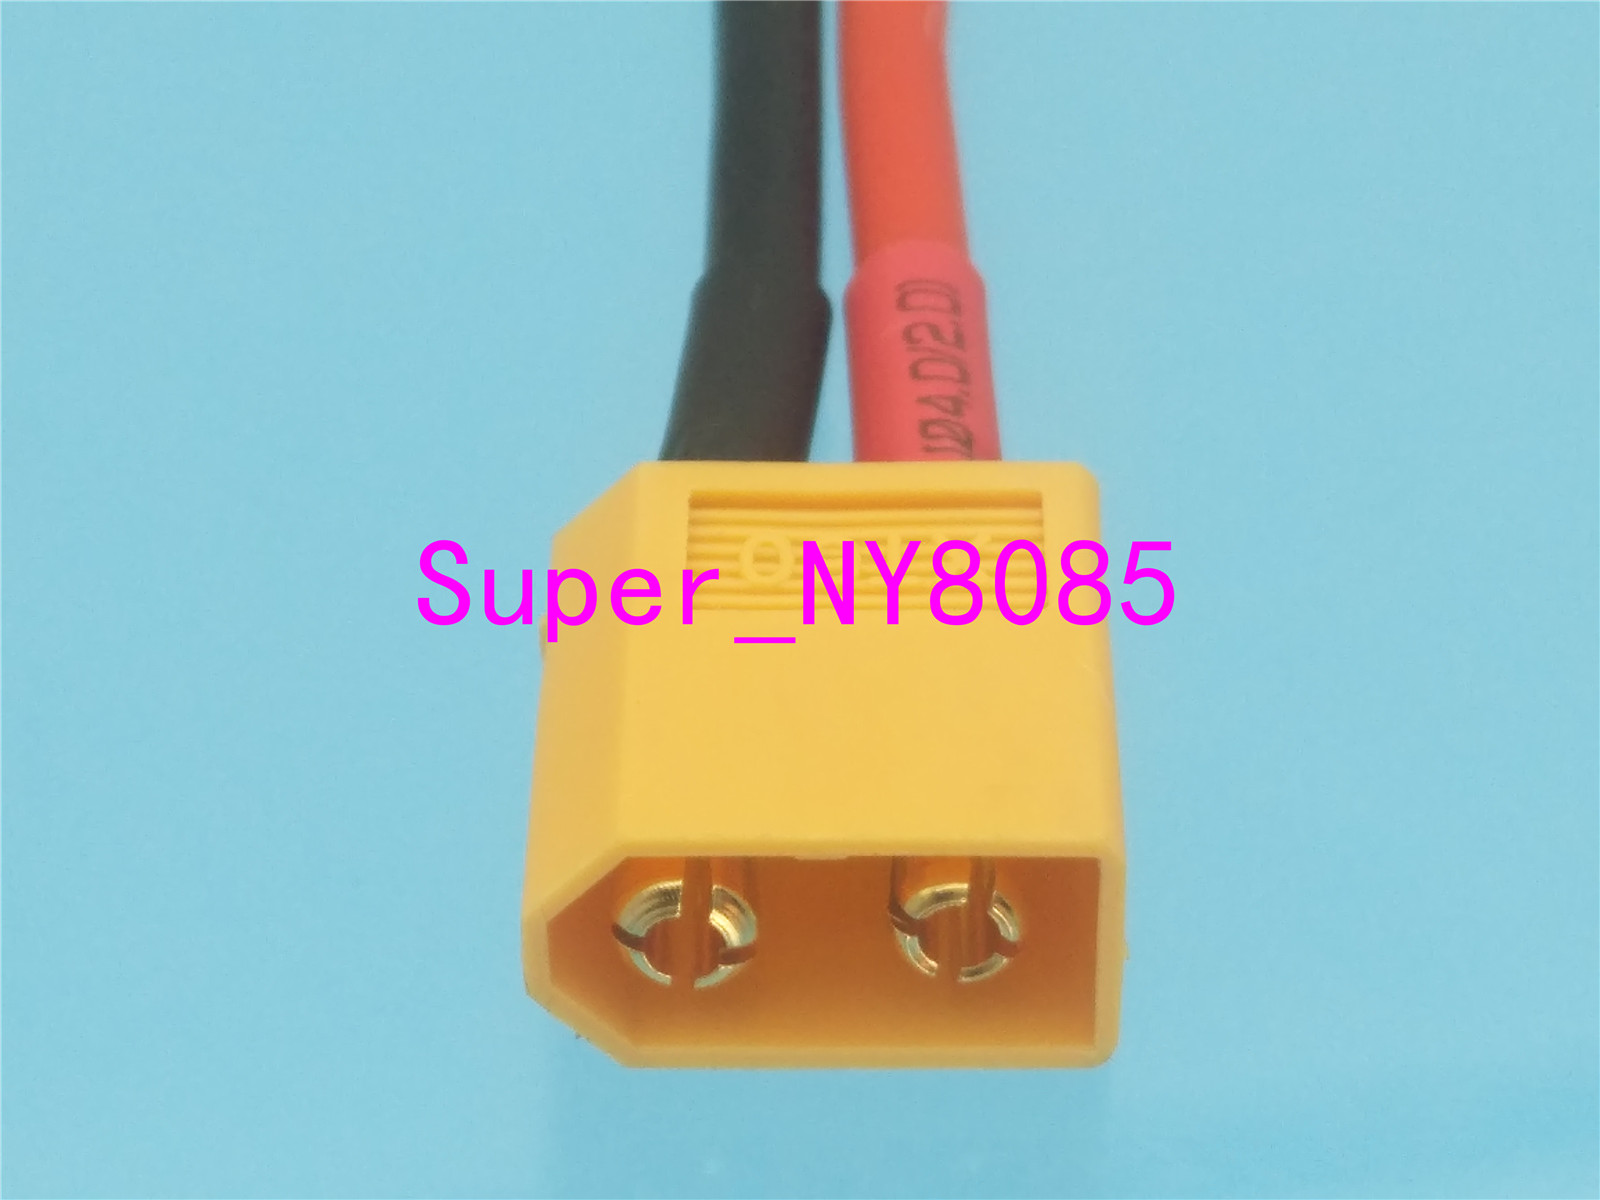 XT60 to Tamiya Adapter charger lead cable for Car Boat Lipo Battery